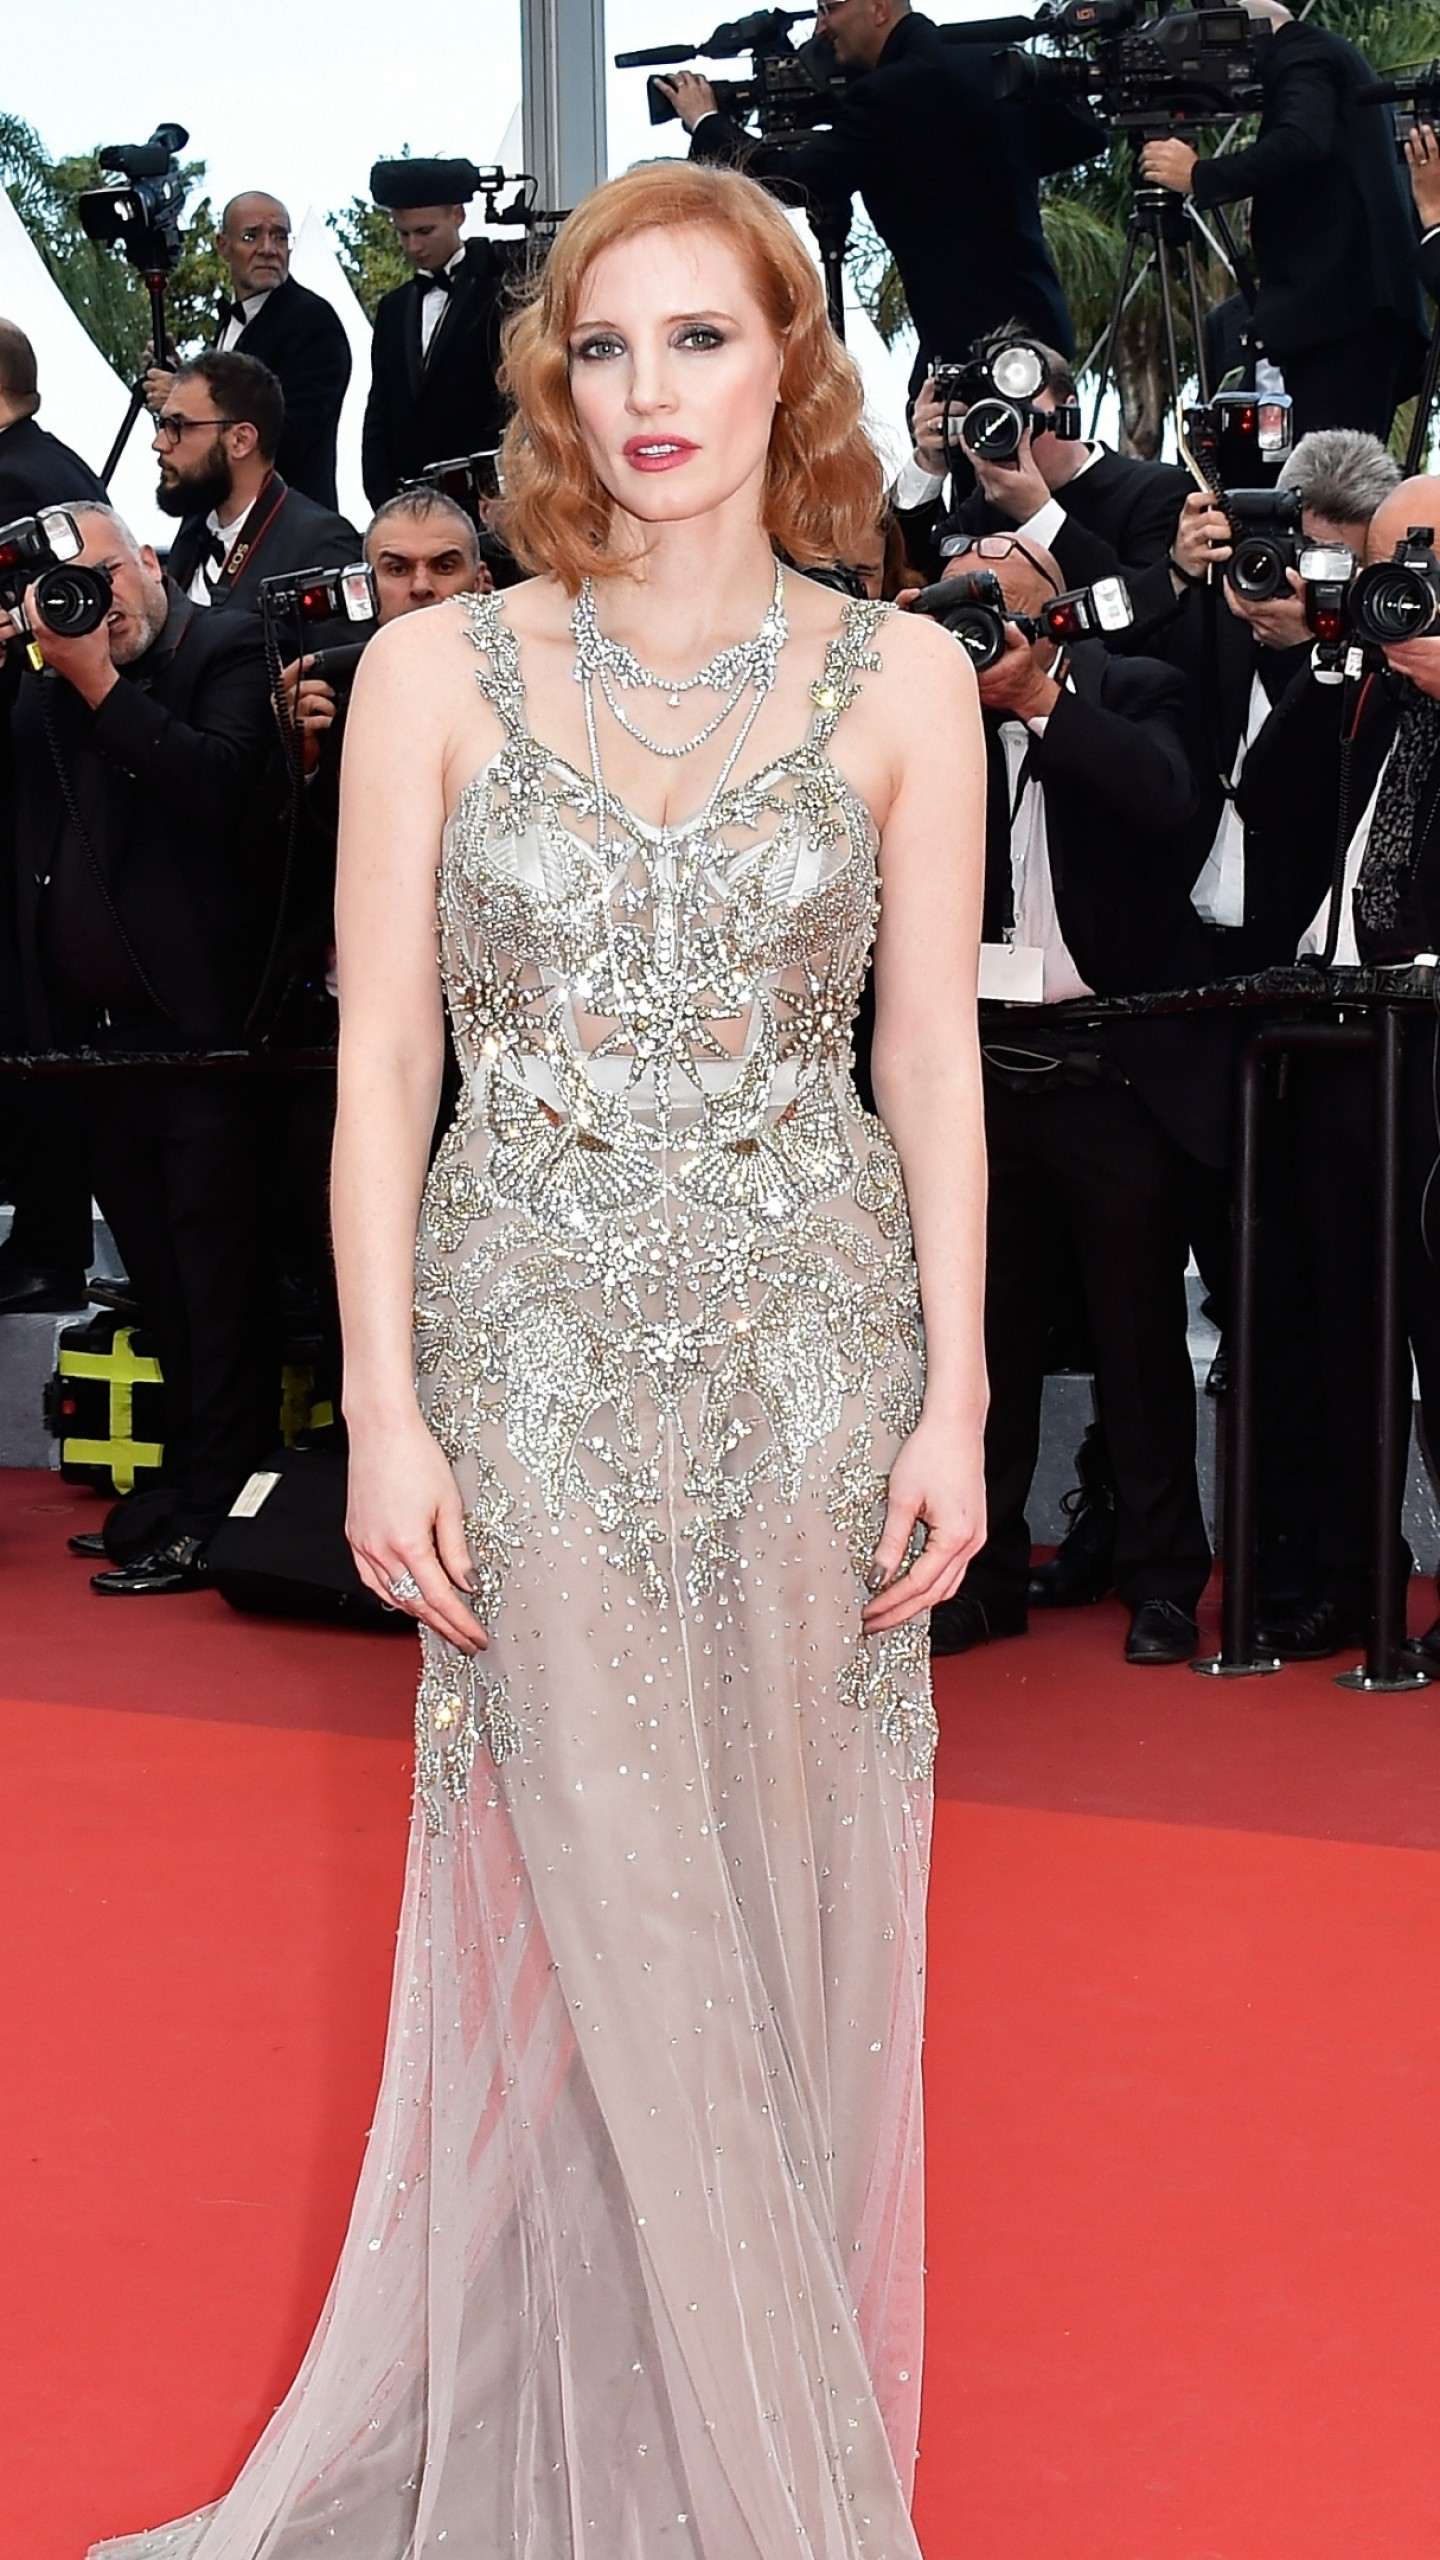 Wallpaper Jessica Chastain Cannes Film Festival 2016 Red